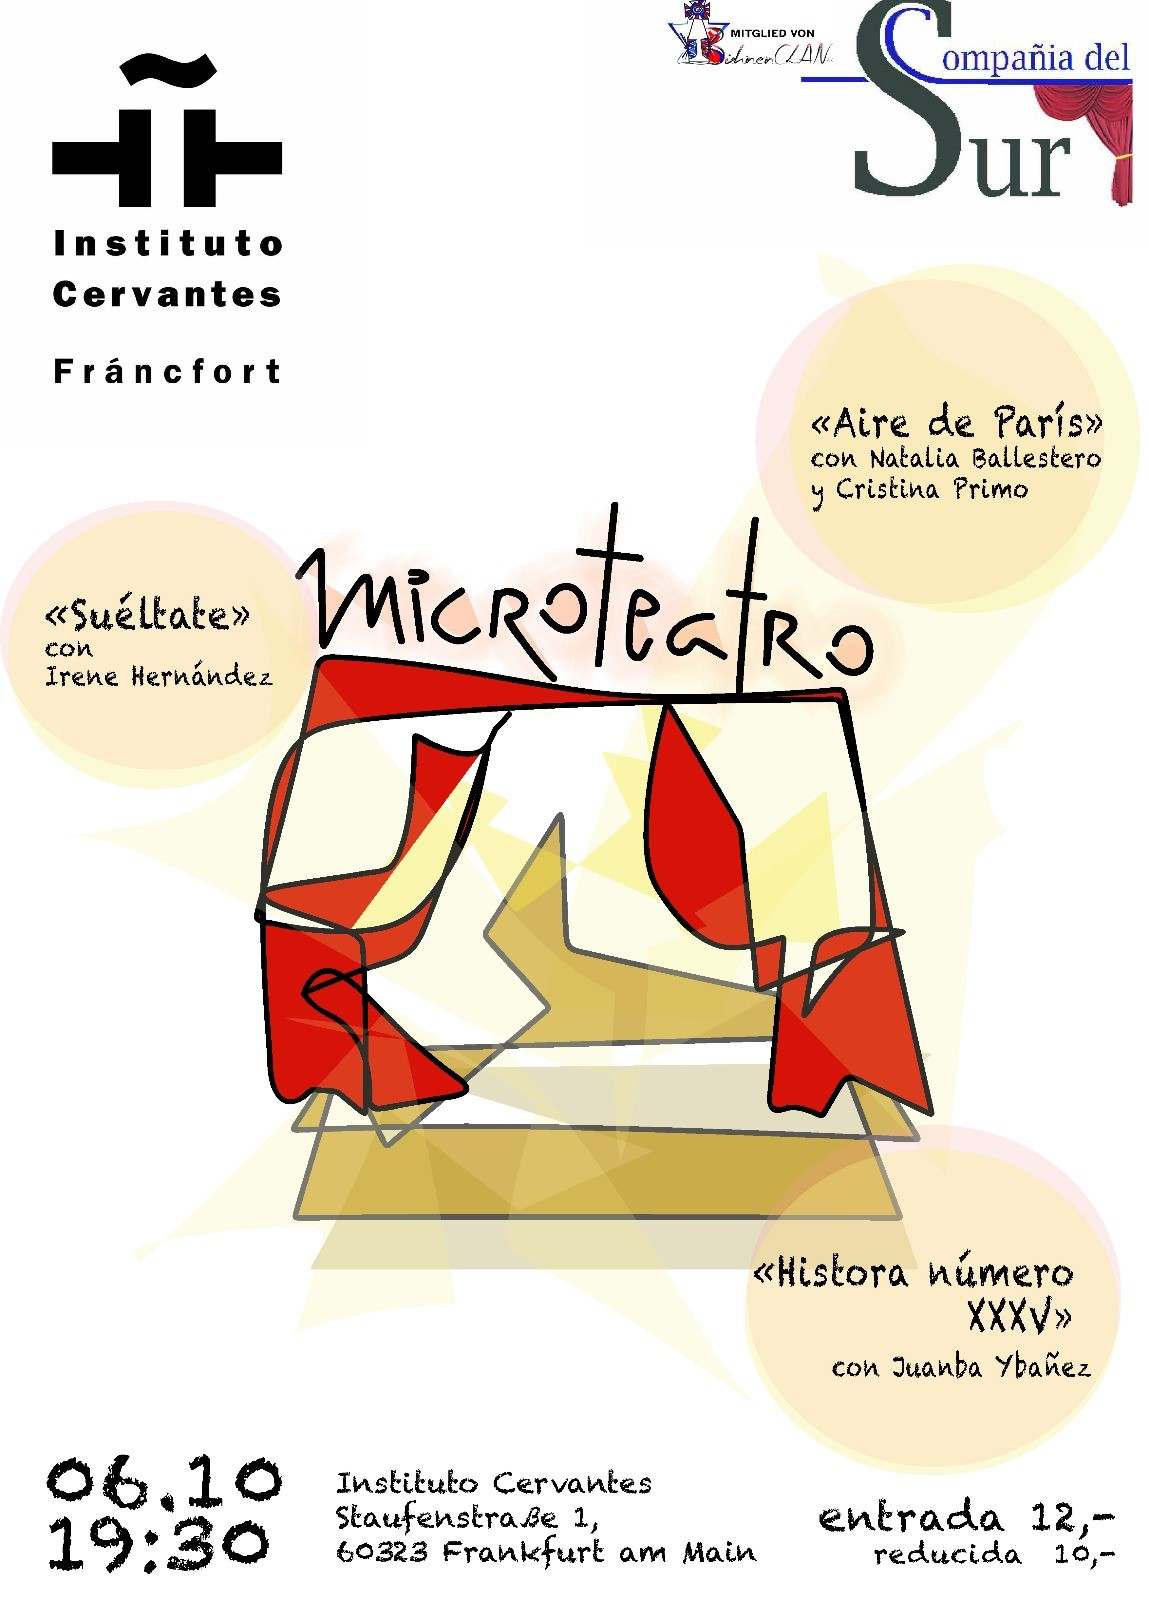 Mikrotheater am 6. Oktober 2018 im Instituto Cervantes Frankfurt